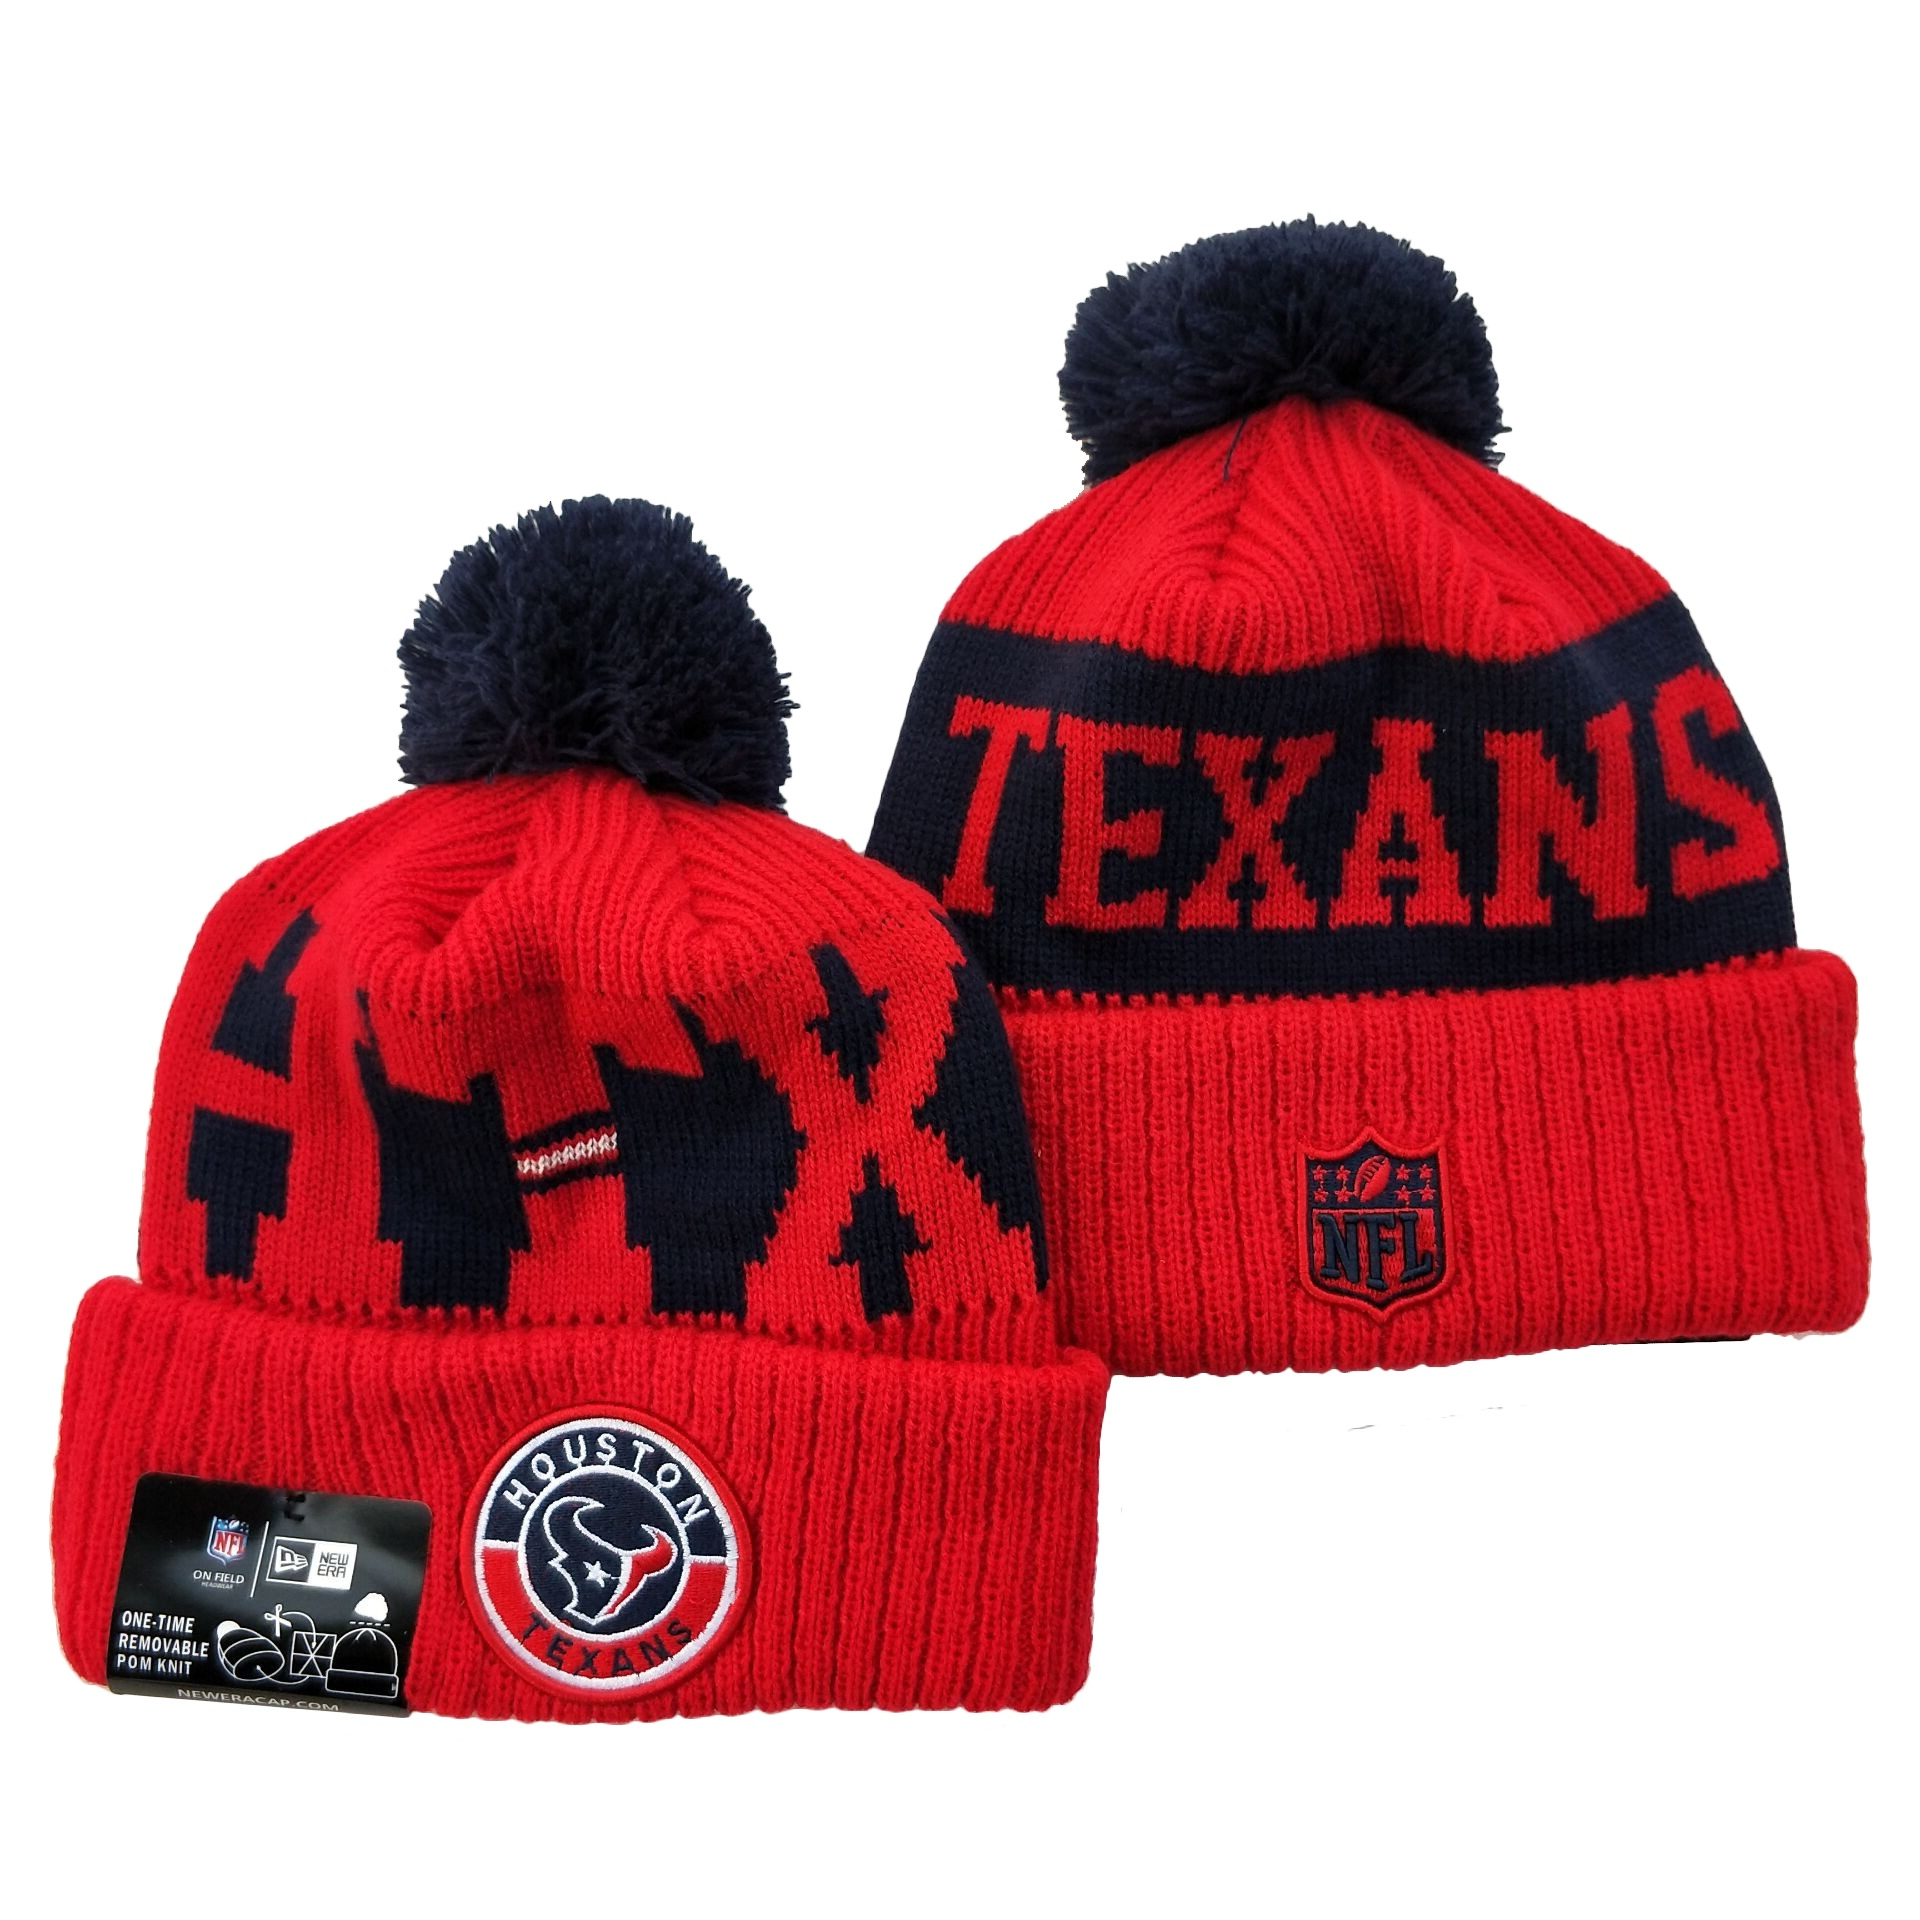 Texans Team Logo Red 2020 NFL Sideline Pom Cuffed Knit Hat YD